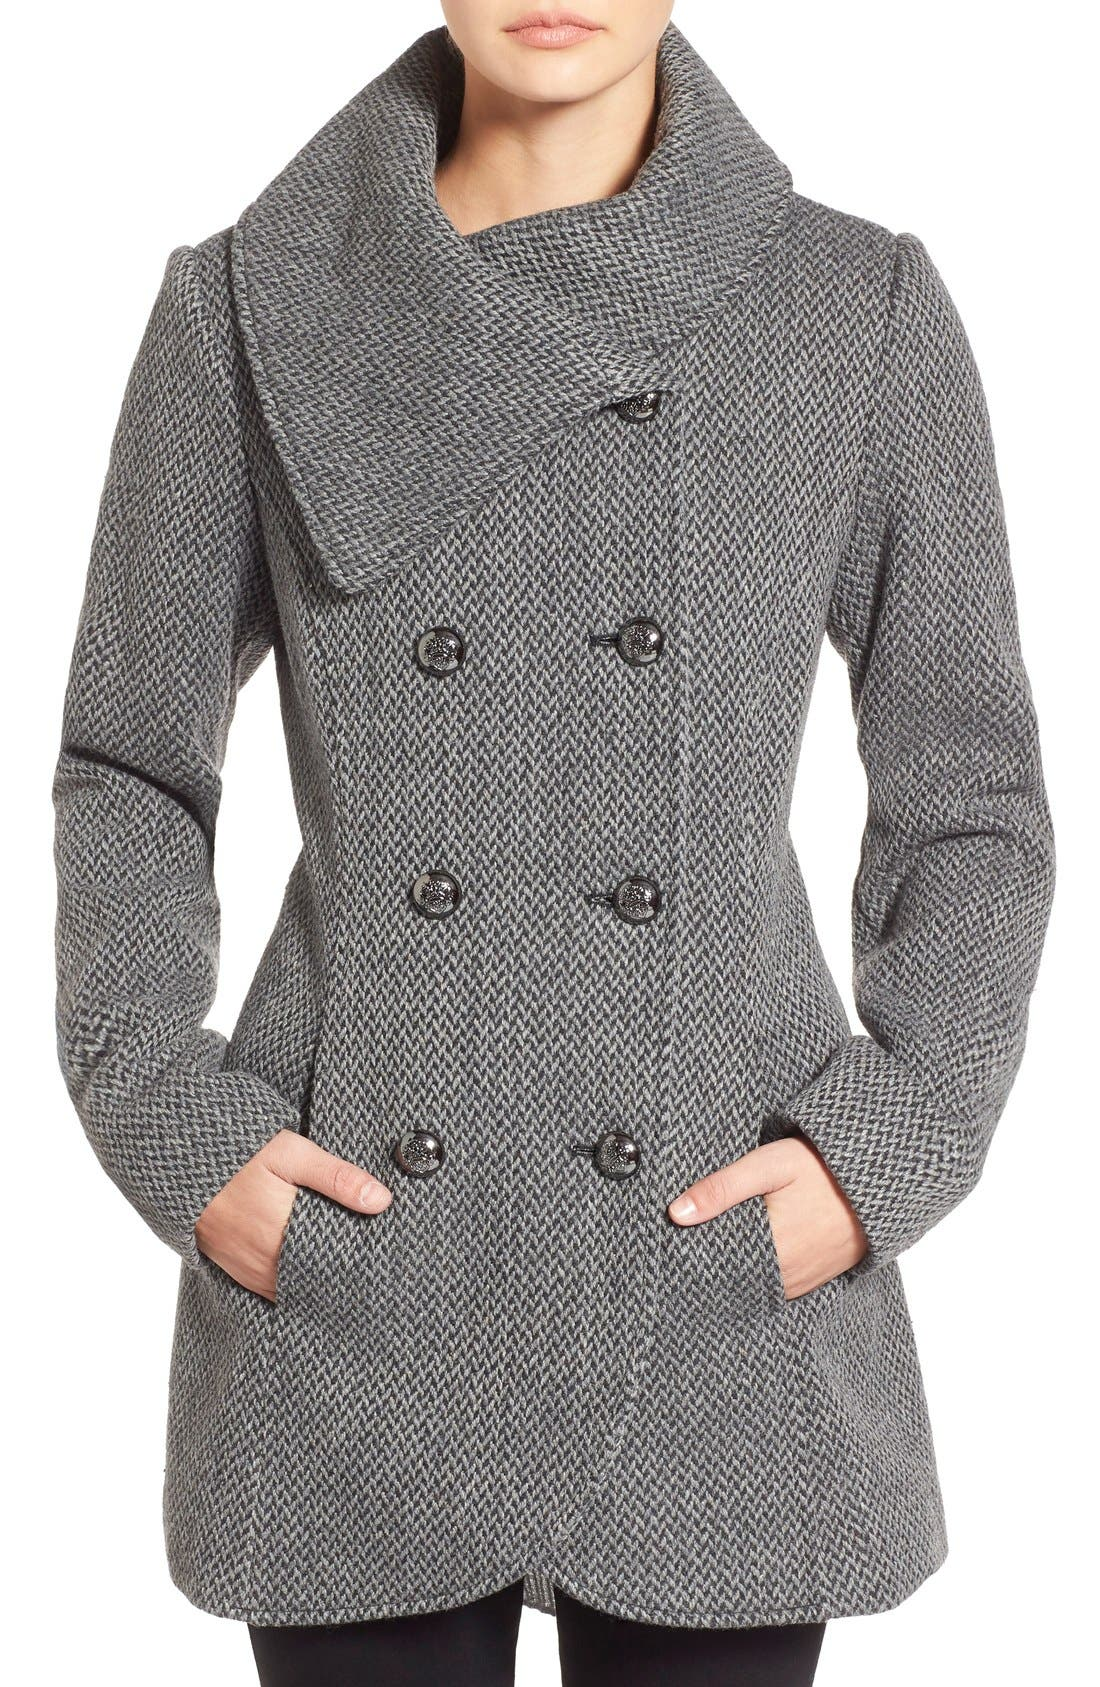 Alternate Image 1 Selected - Jessica Simpson Double Breasted Basket Weave Coat (Online Only)